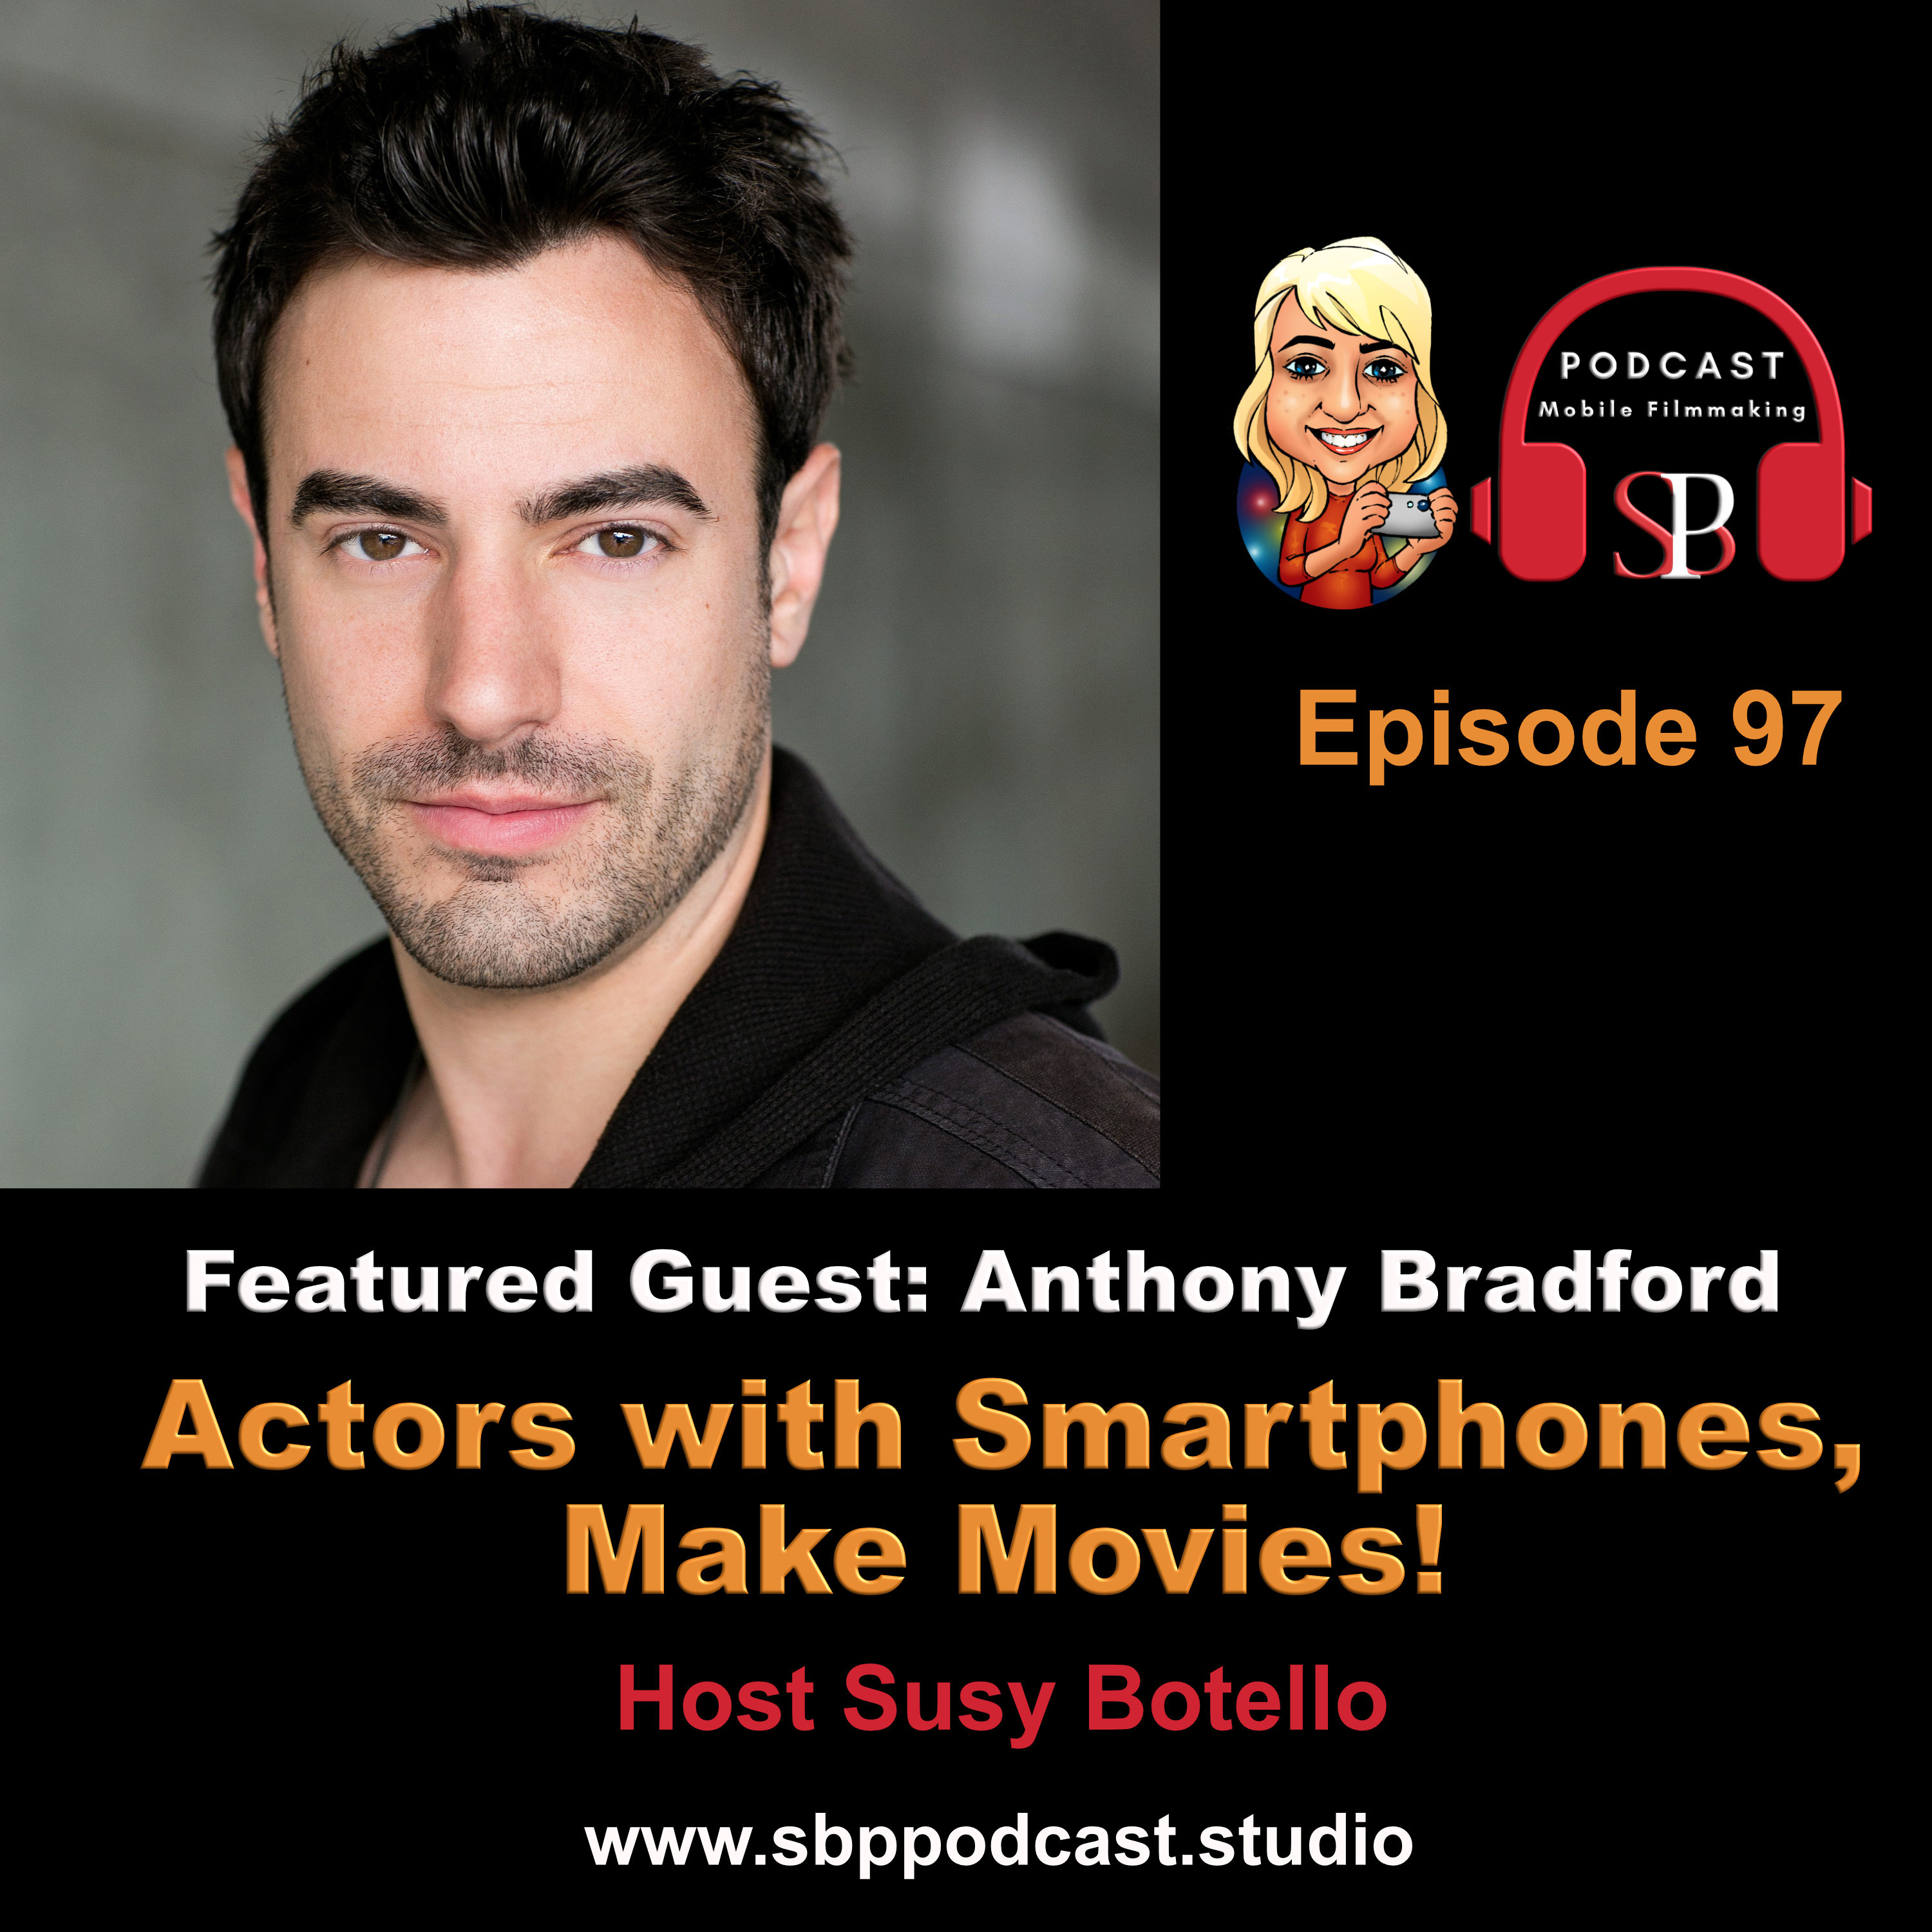 Actors with Smartphones, Make Movies with Anthony Bradford